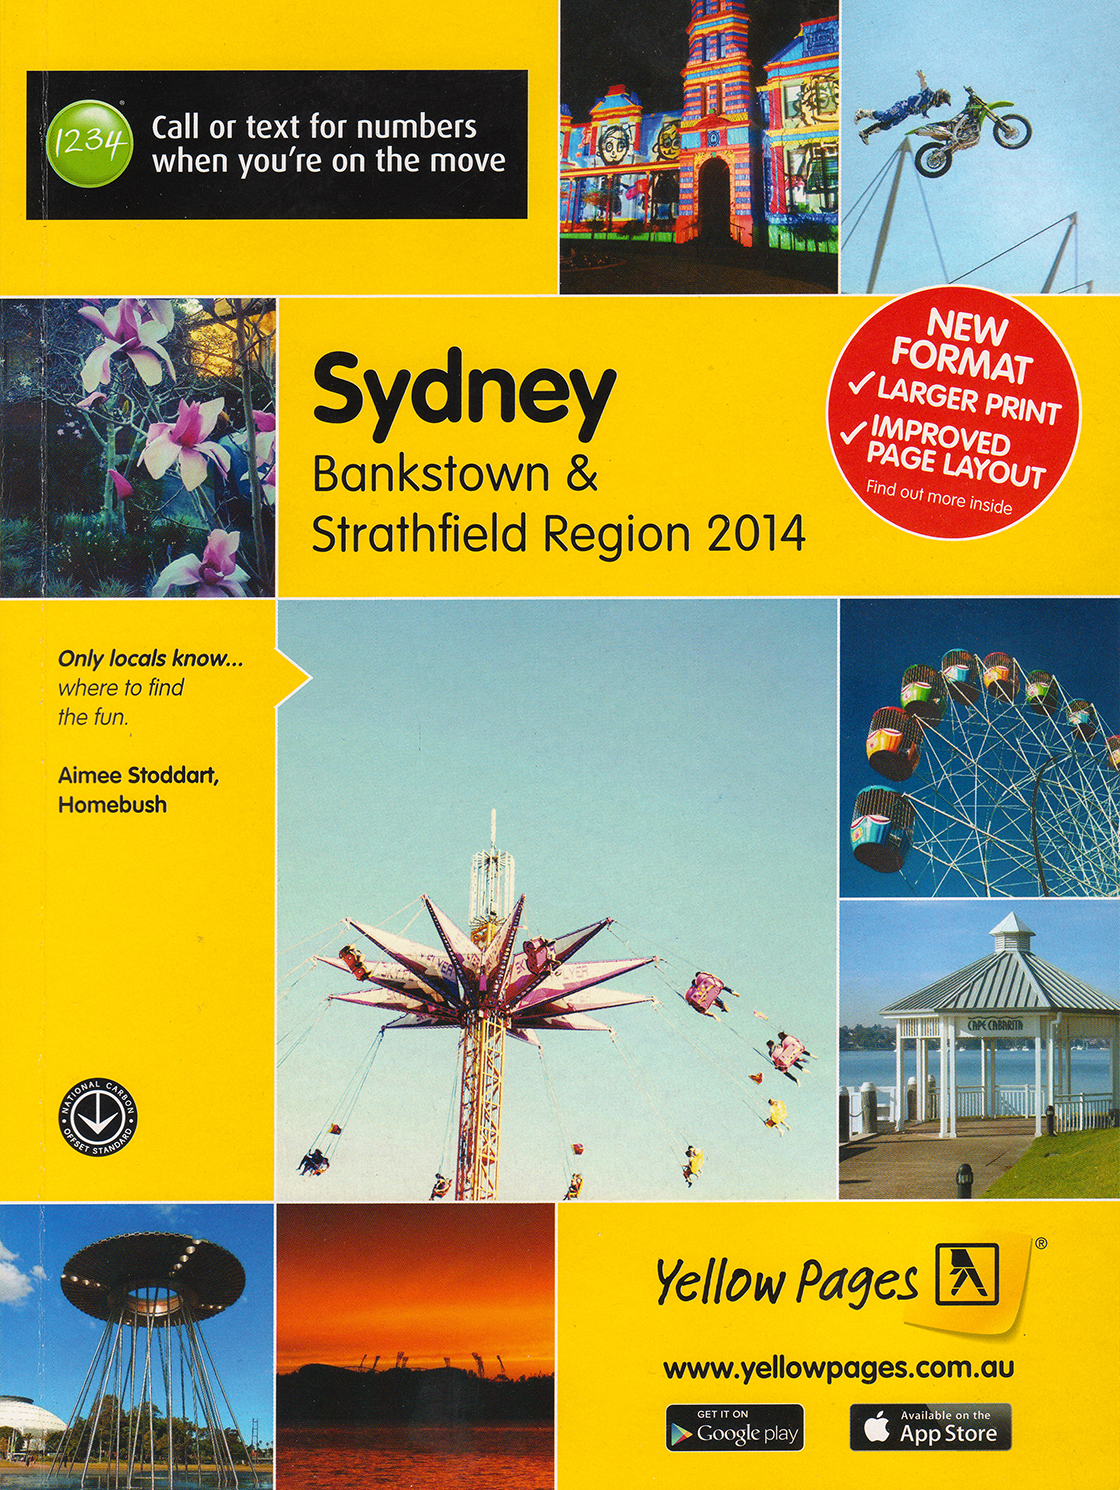 Yellow Pages 2013 Runner Up_Page_2-small.jpg